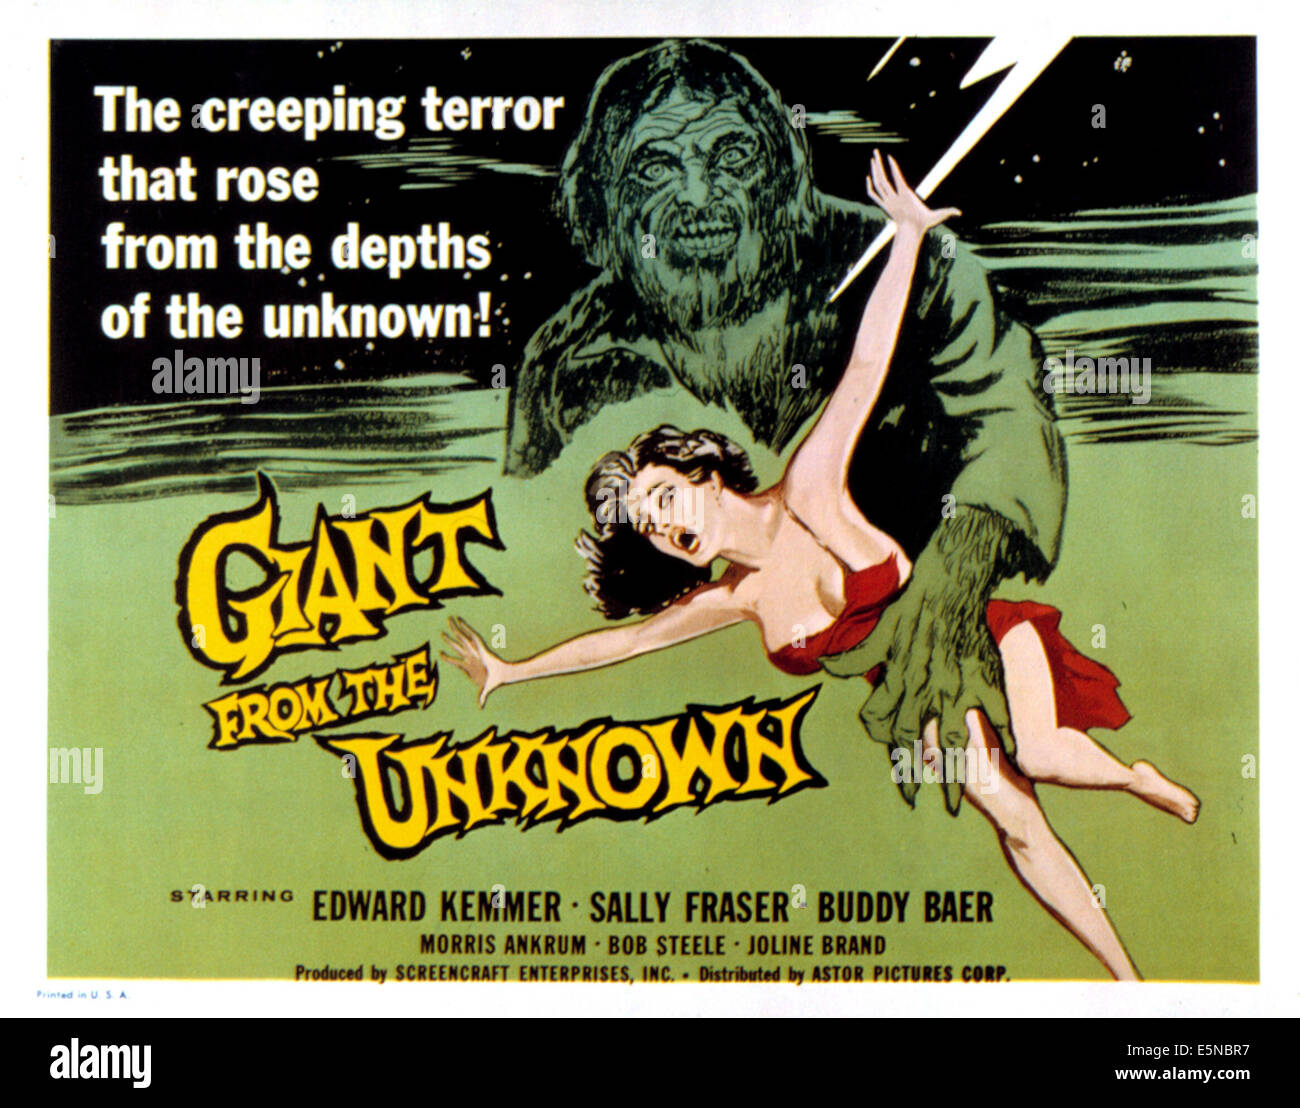 GIANT OF THE UNKNOWN, 1958 - Stock Image